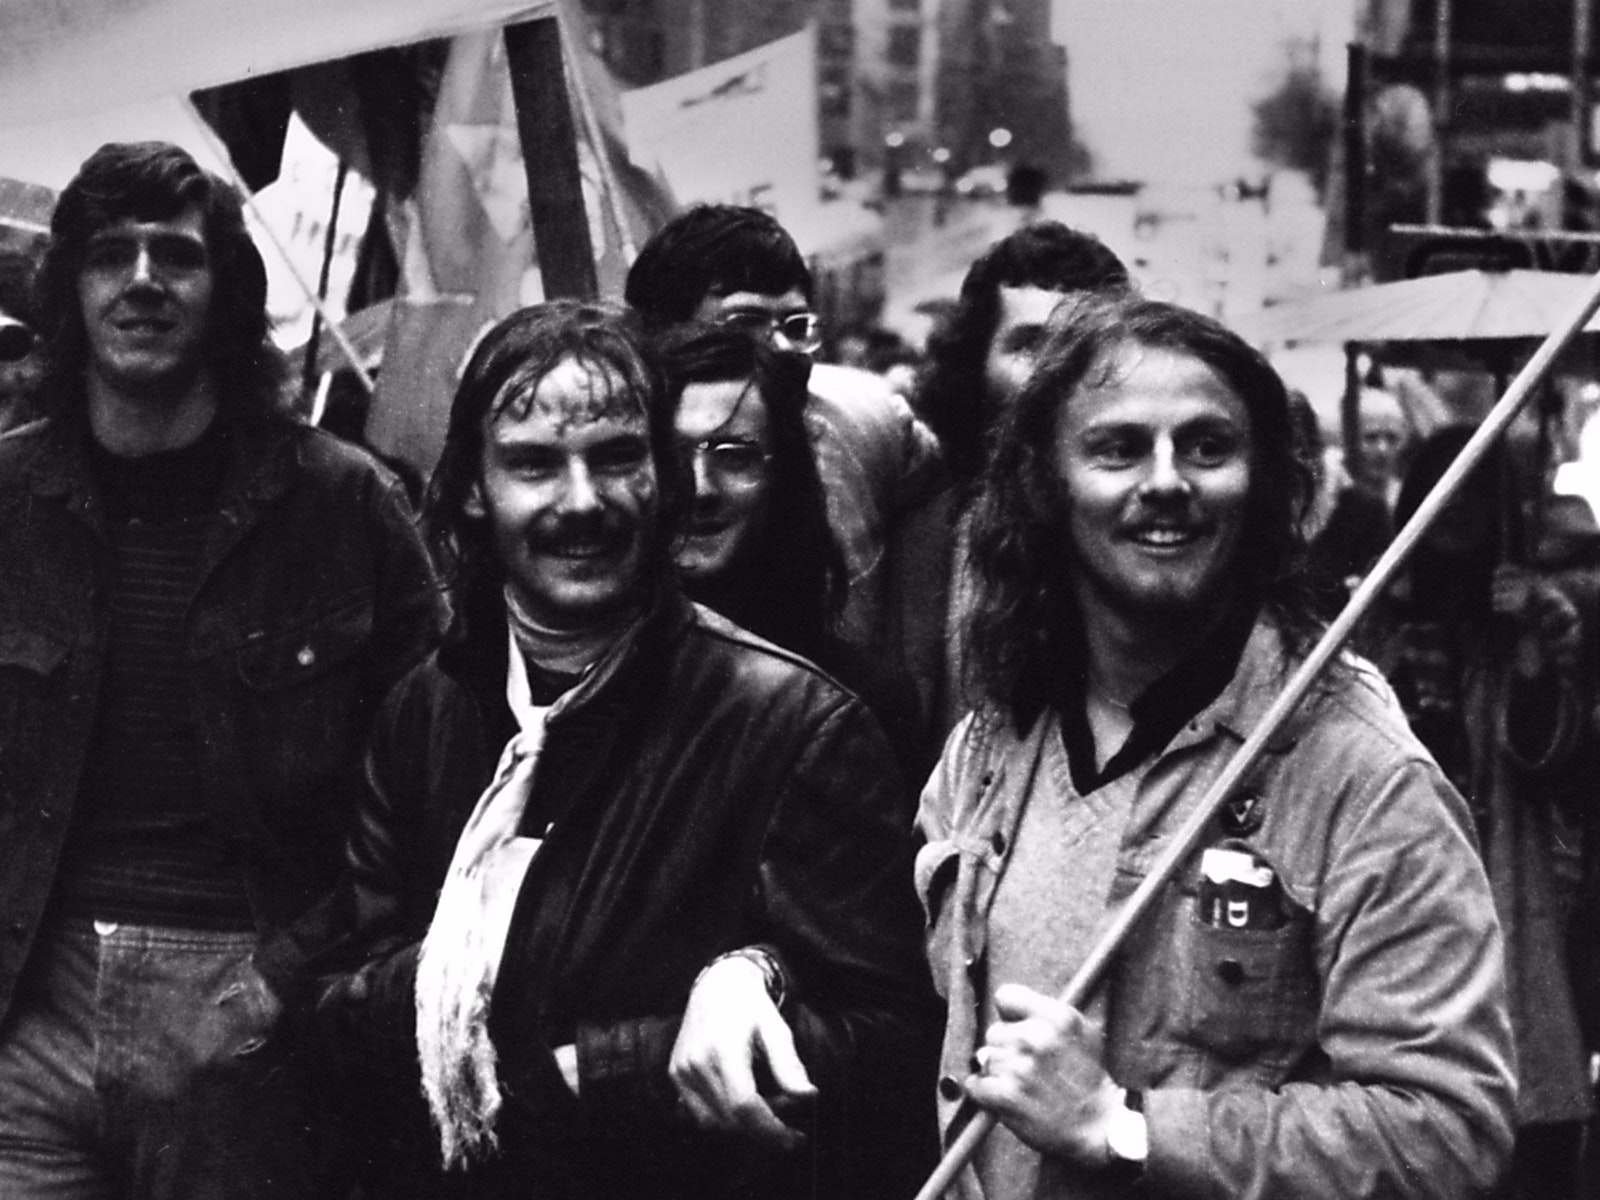 Gay Pride Week, Melbourne, 1973. Feat. in film 'Out of the Closet into the Streets' by Wind & Sky